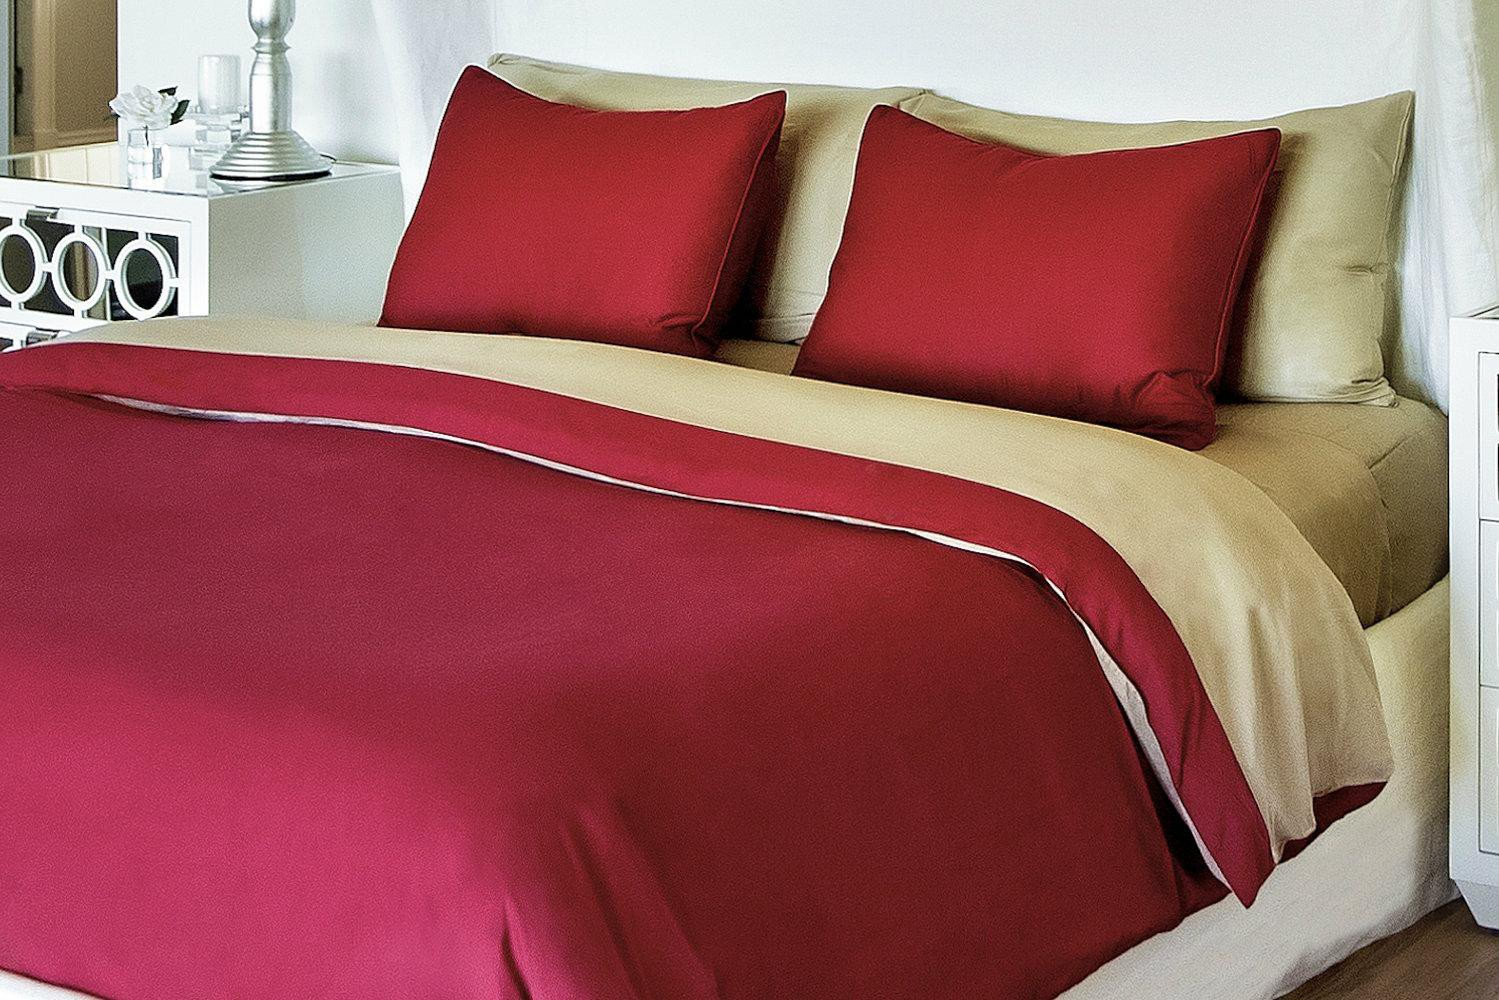 Bedvoyage Decorative Bedding Duvet Cover - King - Champagne/Cayenne [Reversible]